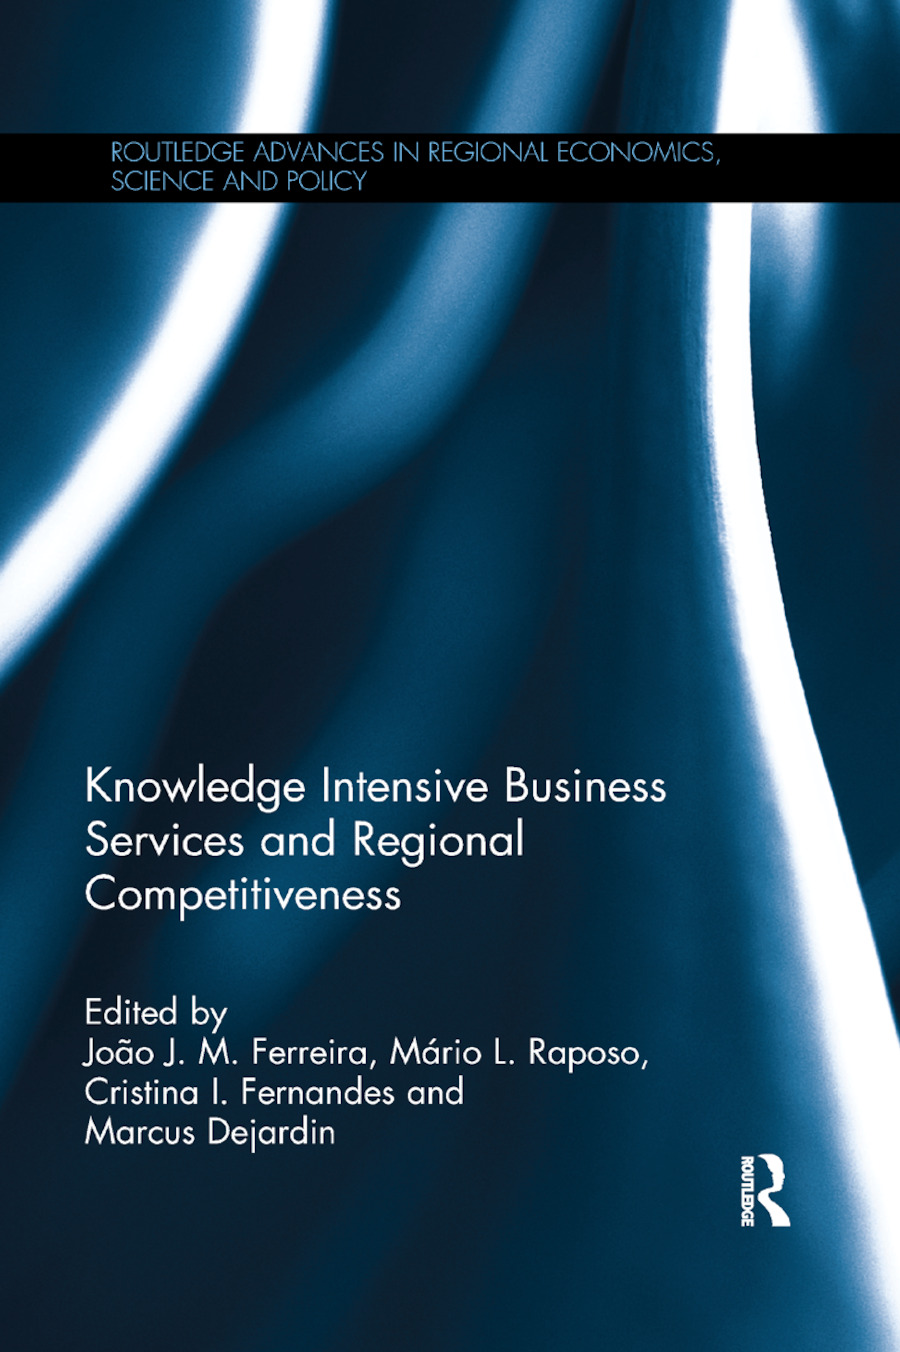 Knowledge Intensive Business Services and Regional Competitiveness book cover